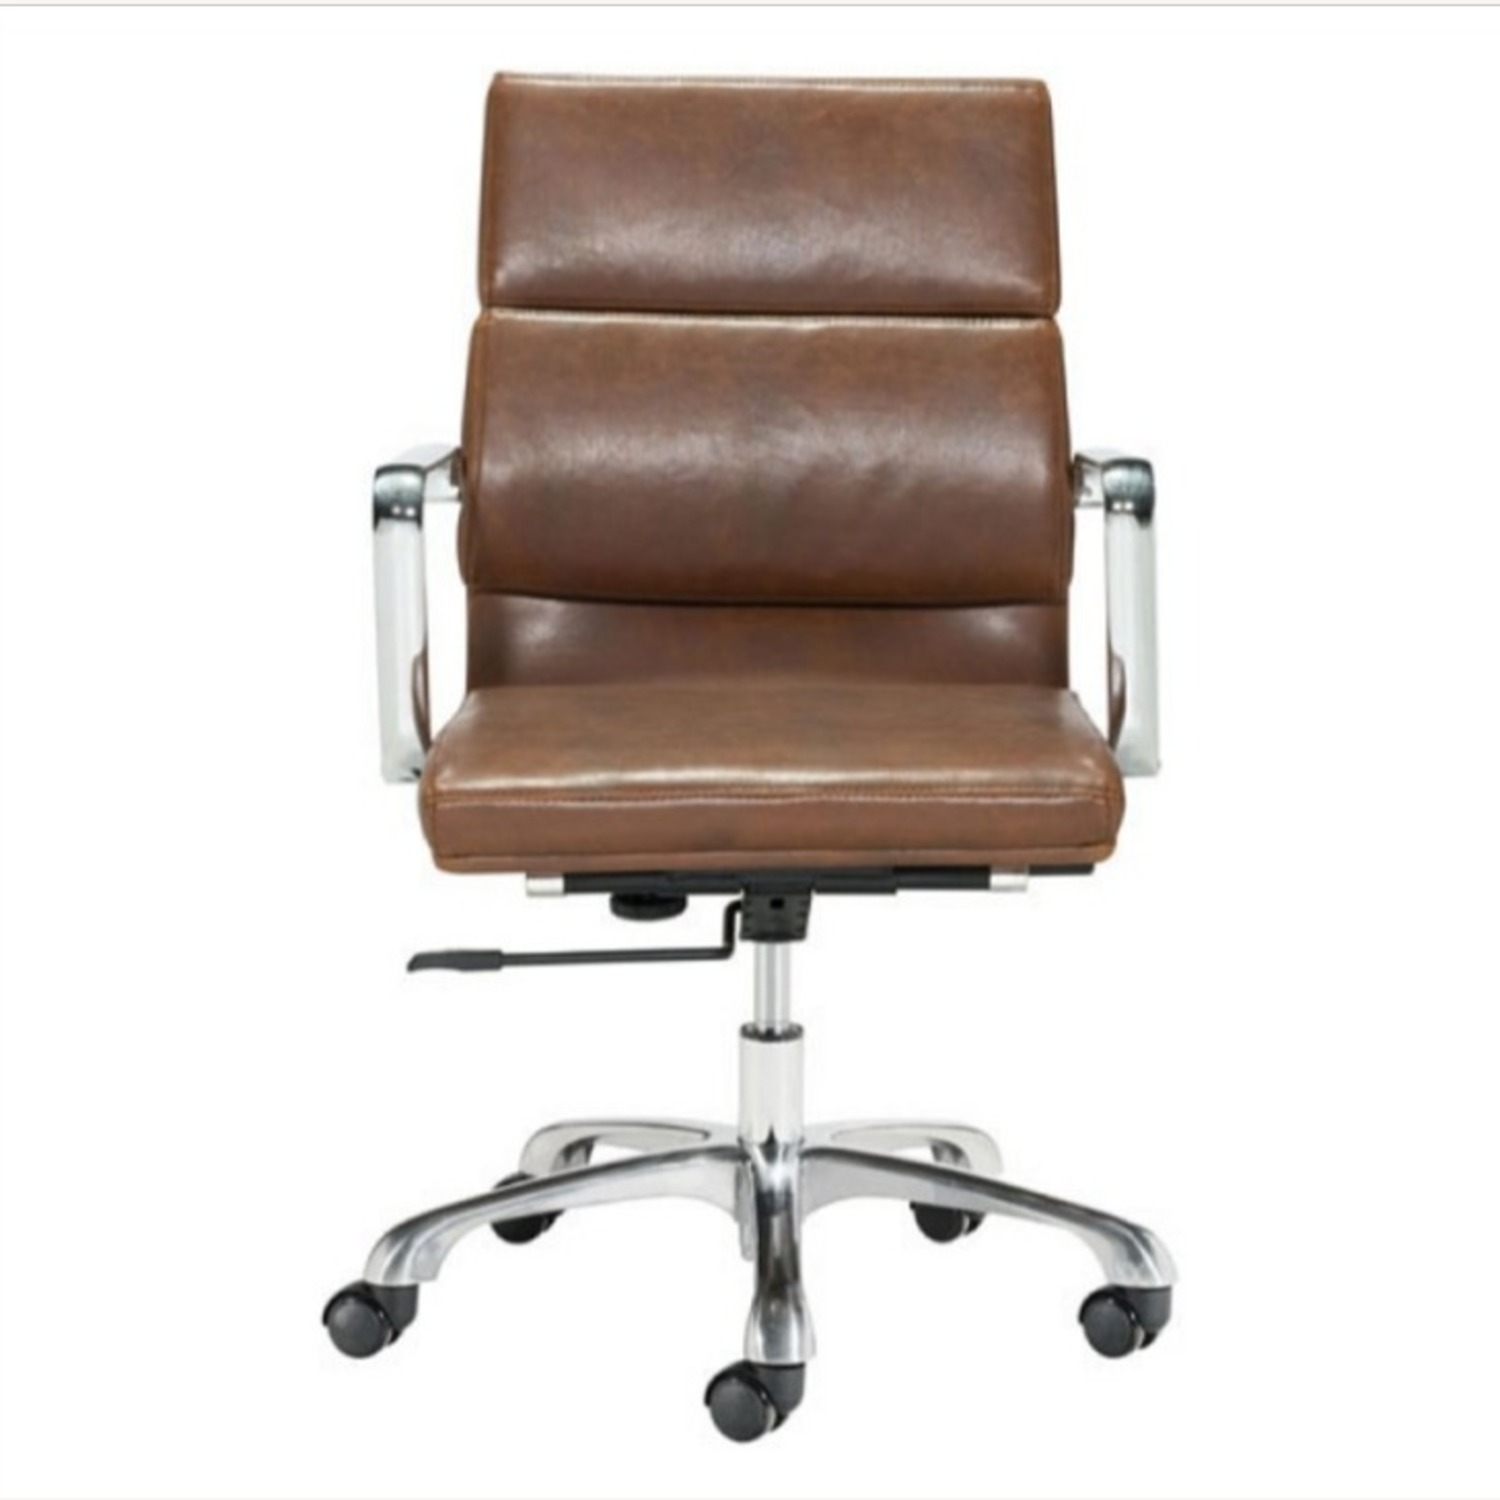 Office Chair In Brown Faux Leather Seat & Back - image-2